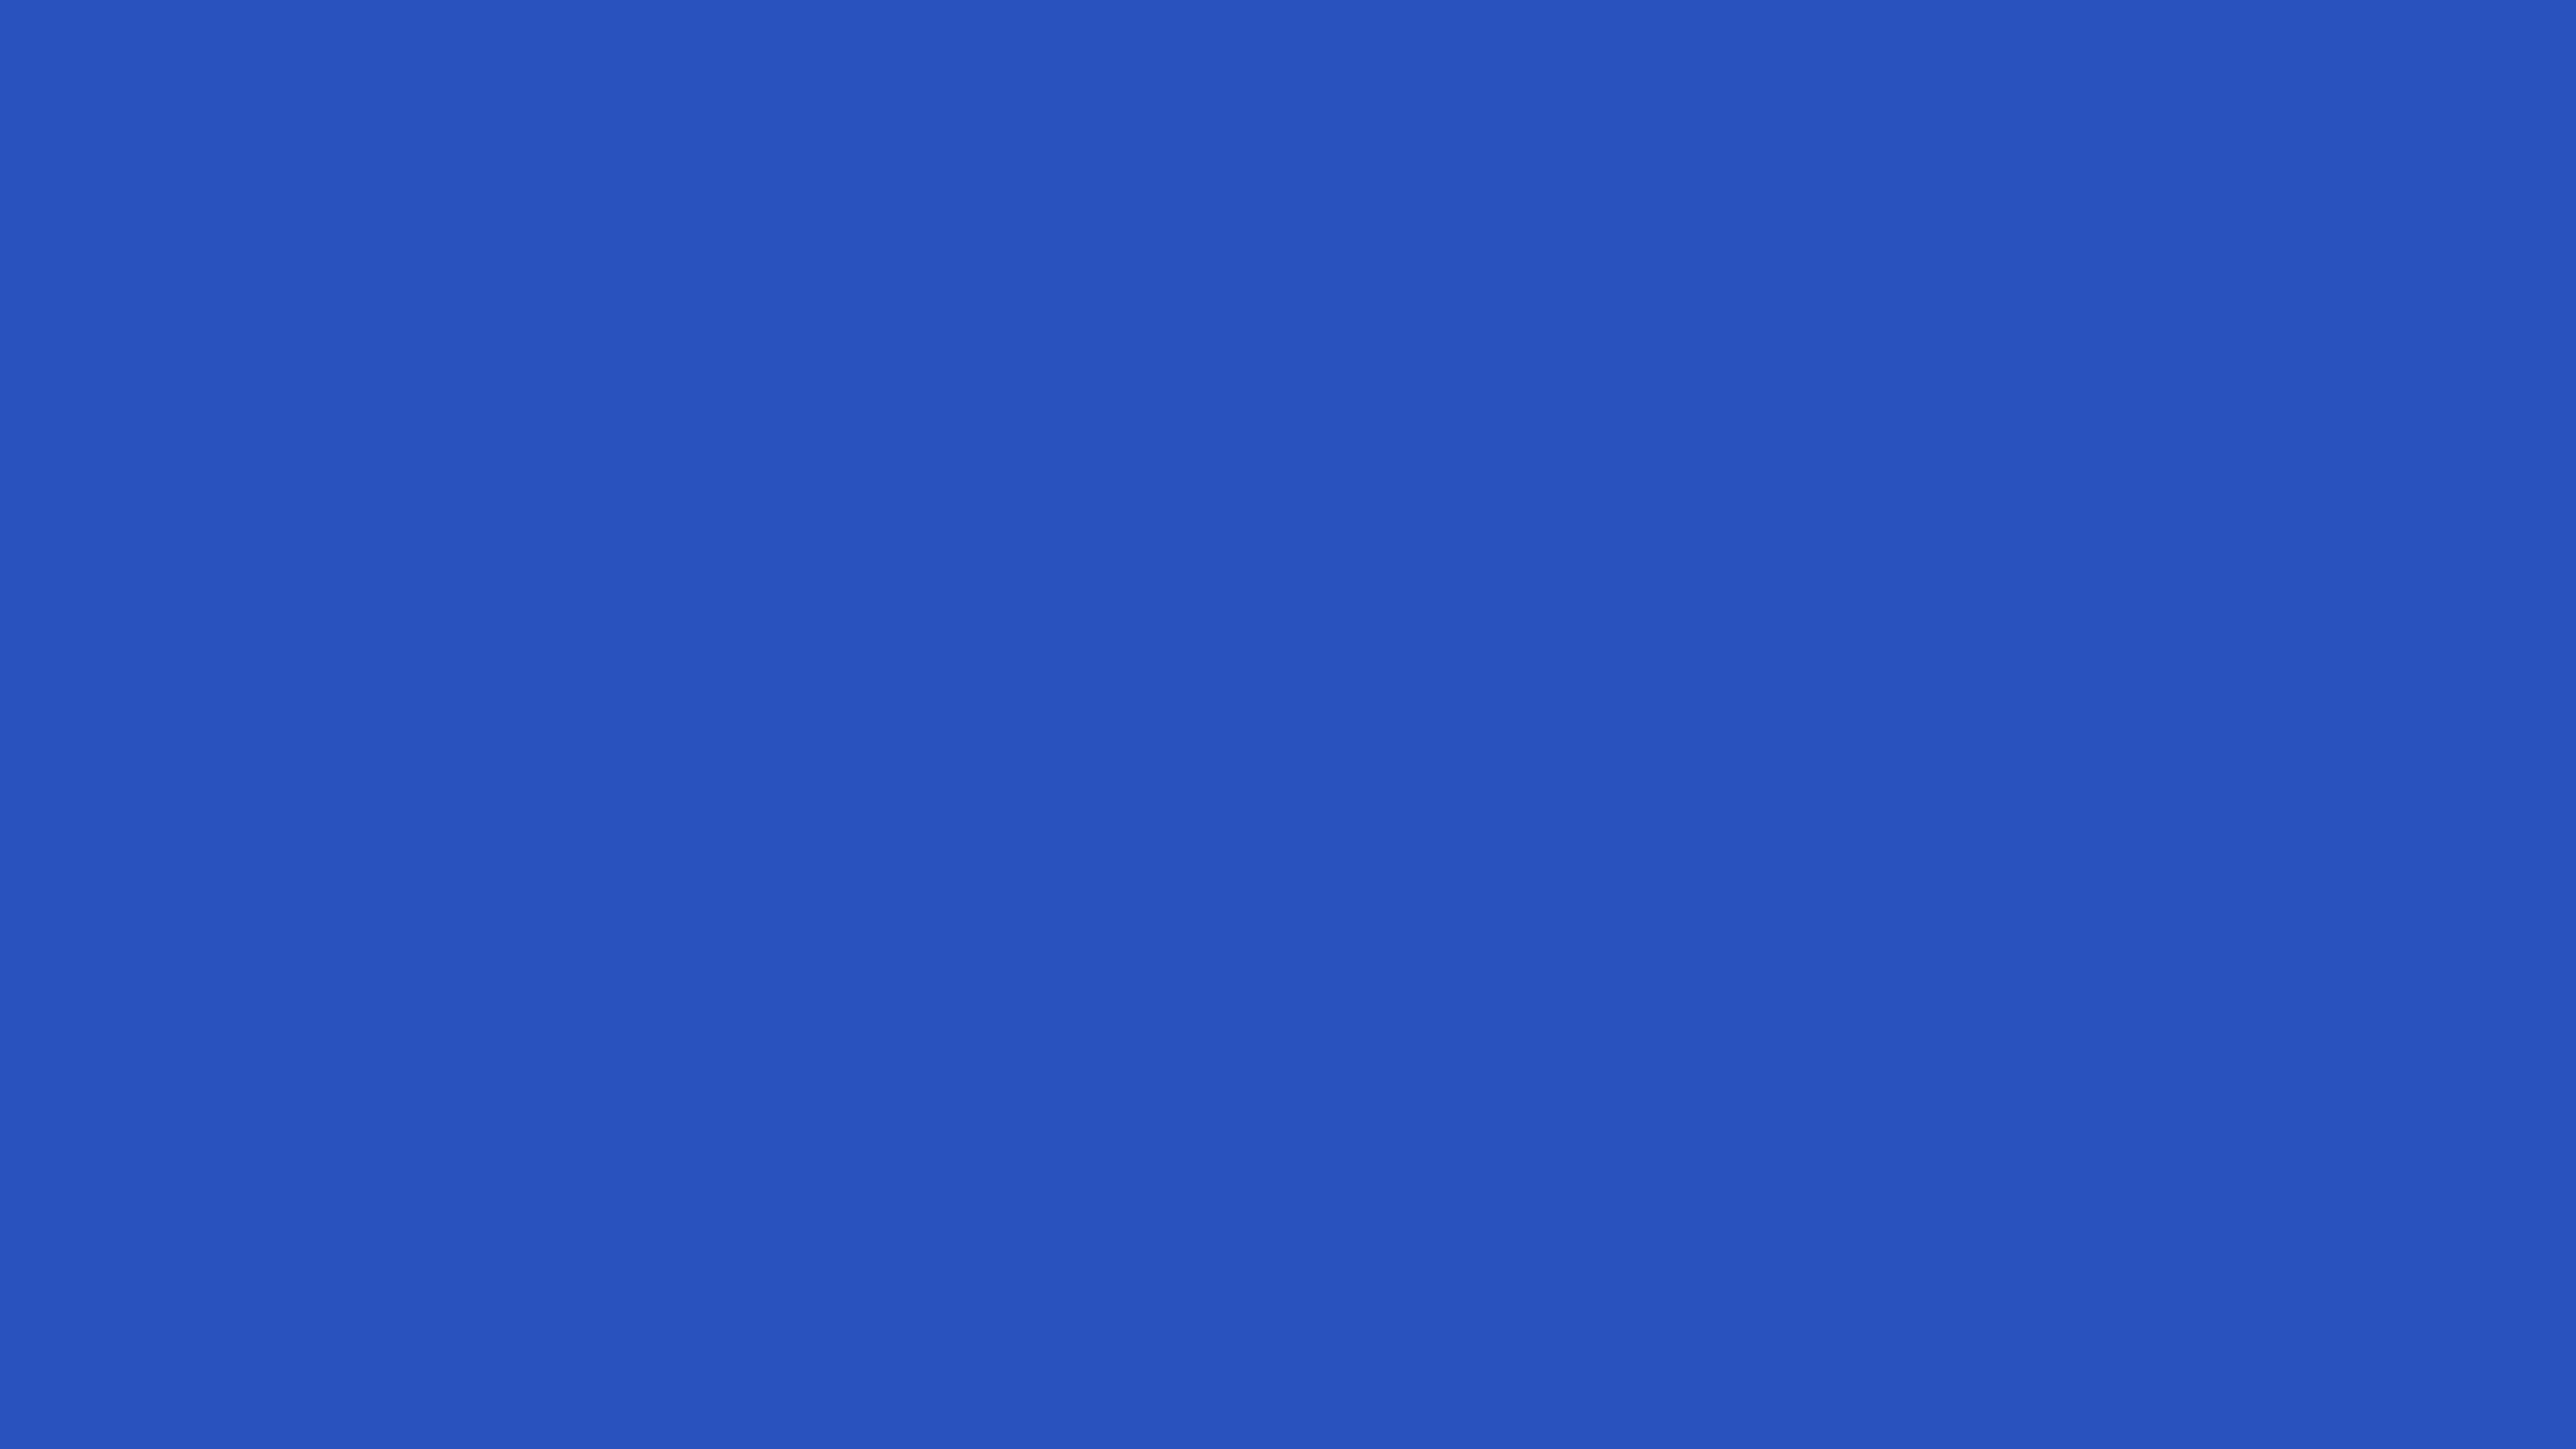 5120x2880 Cerulean Blue Solid Color Background